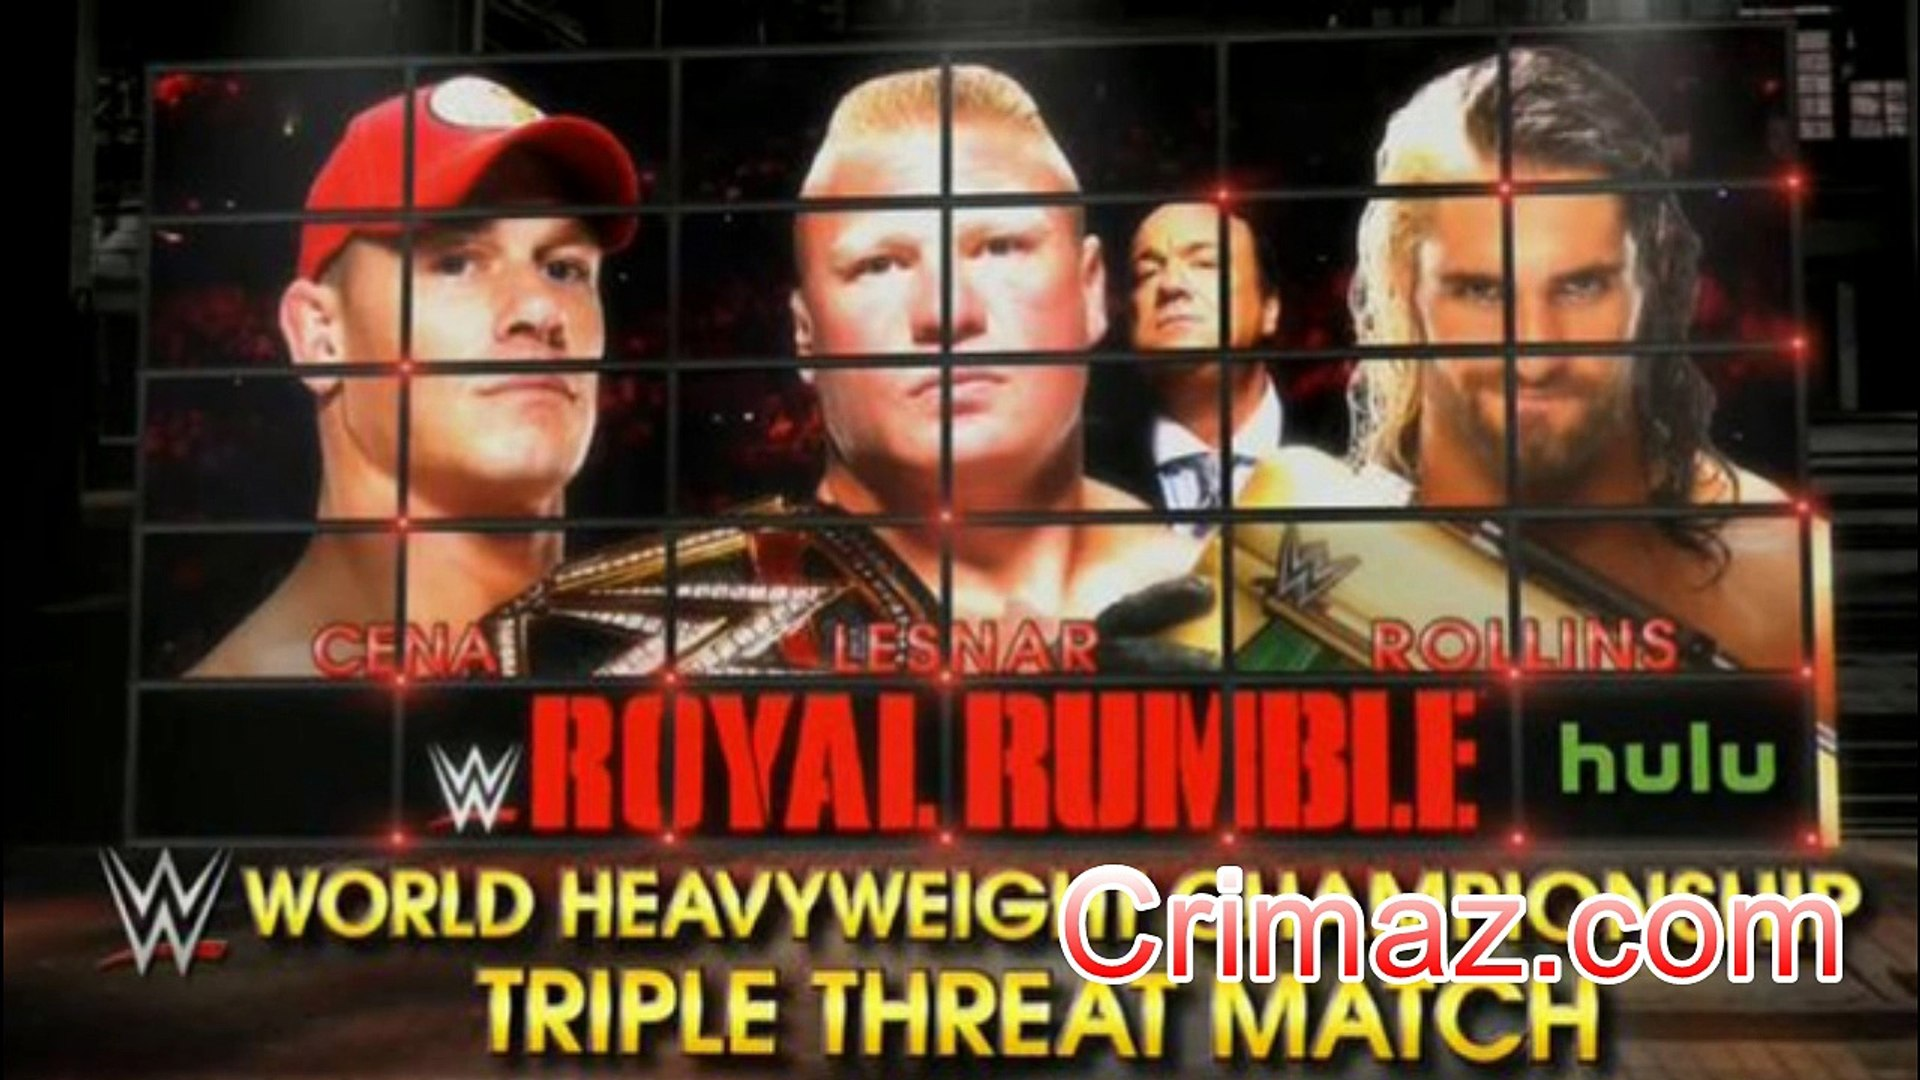 Watch WWE Royal Rumble 2015 - 1-25-2015 - January 25th 2015 Match Card (Crimaz com)